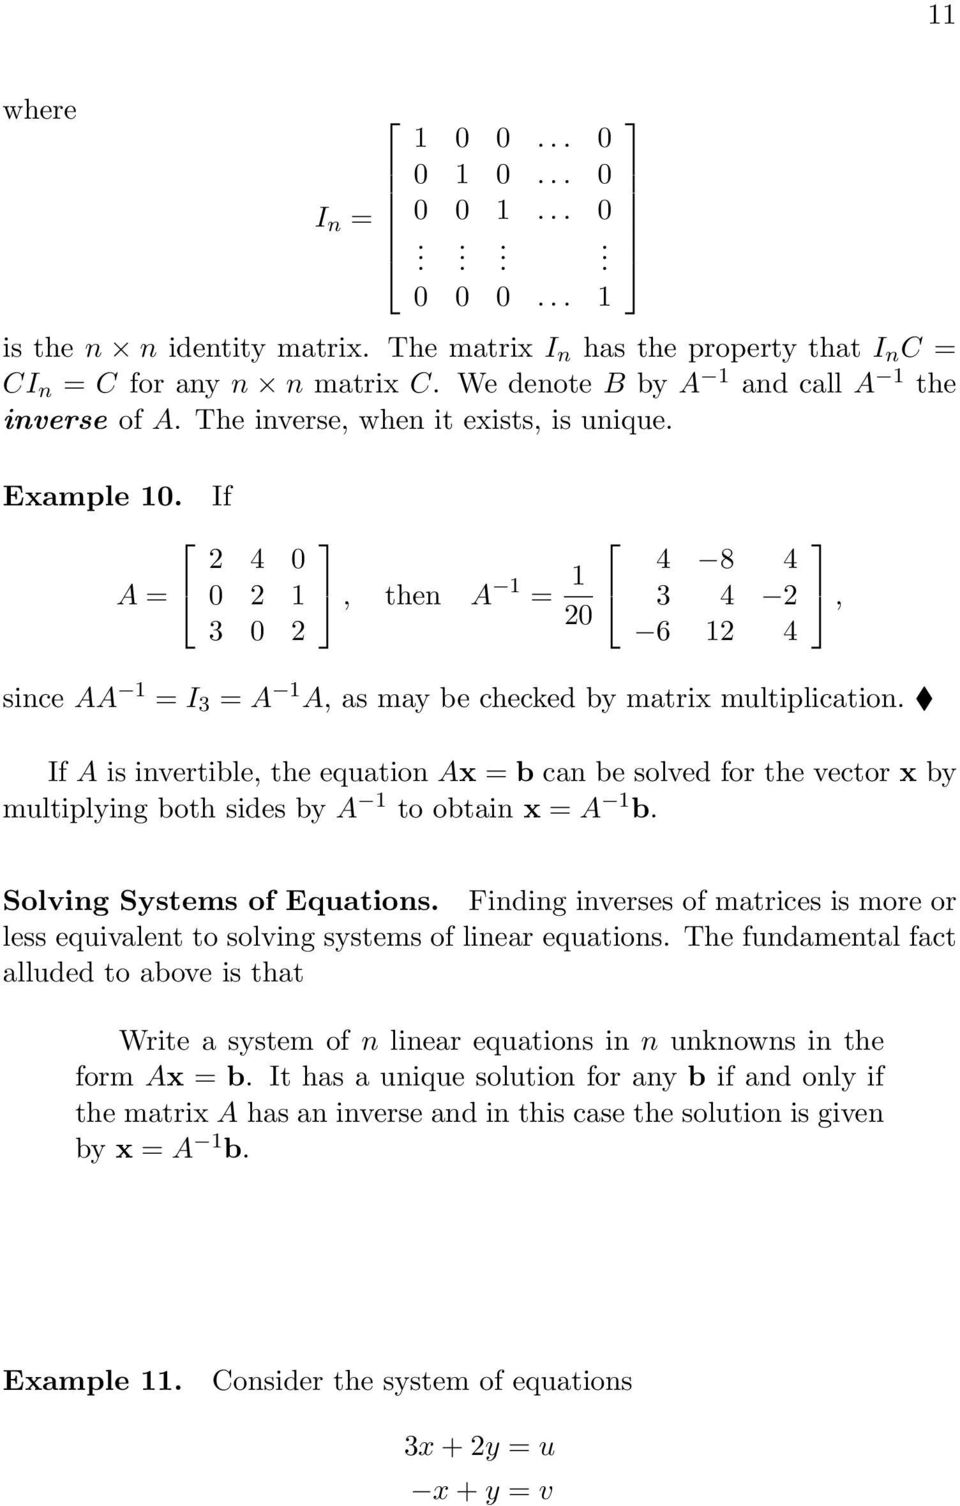 sides by A to obtain x = A b, Solving Systems of Equations Finding inverses of matrices is more or less equivalent to solving systems of linear equations The fundamental fact alluded to above is that